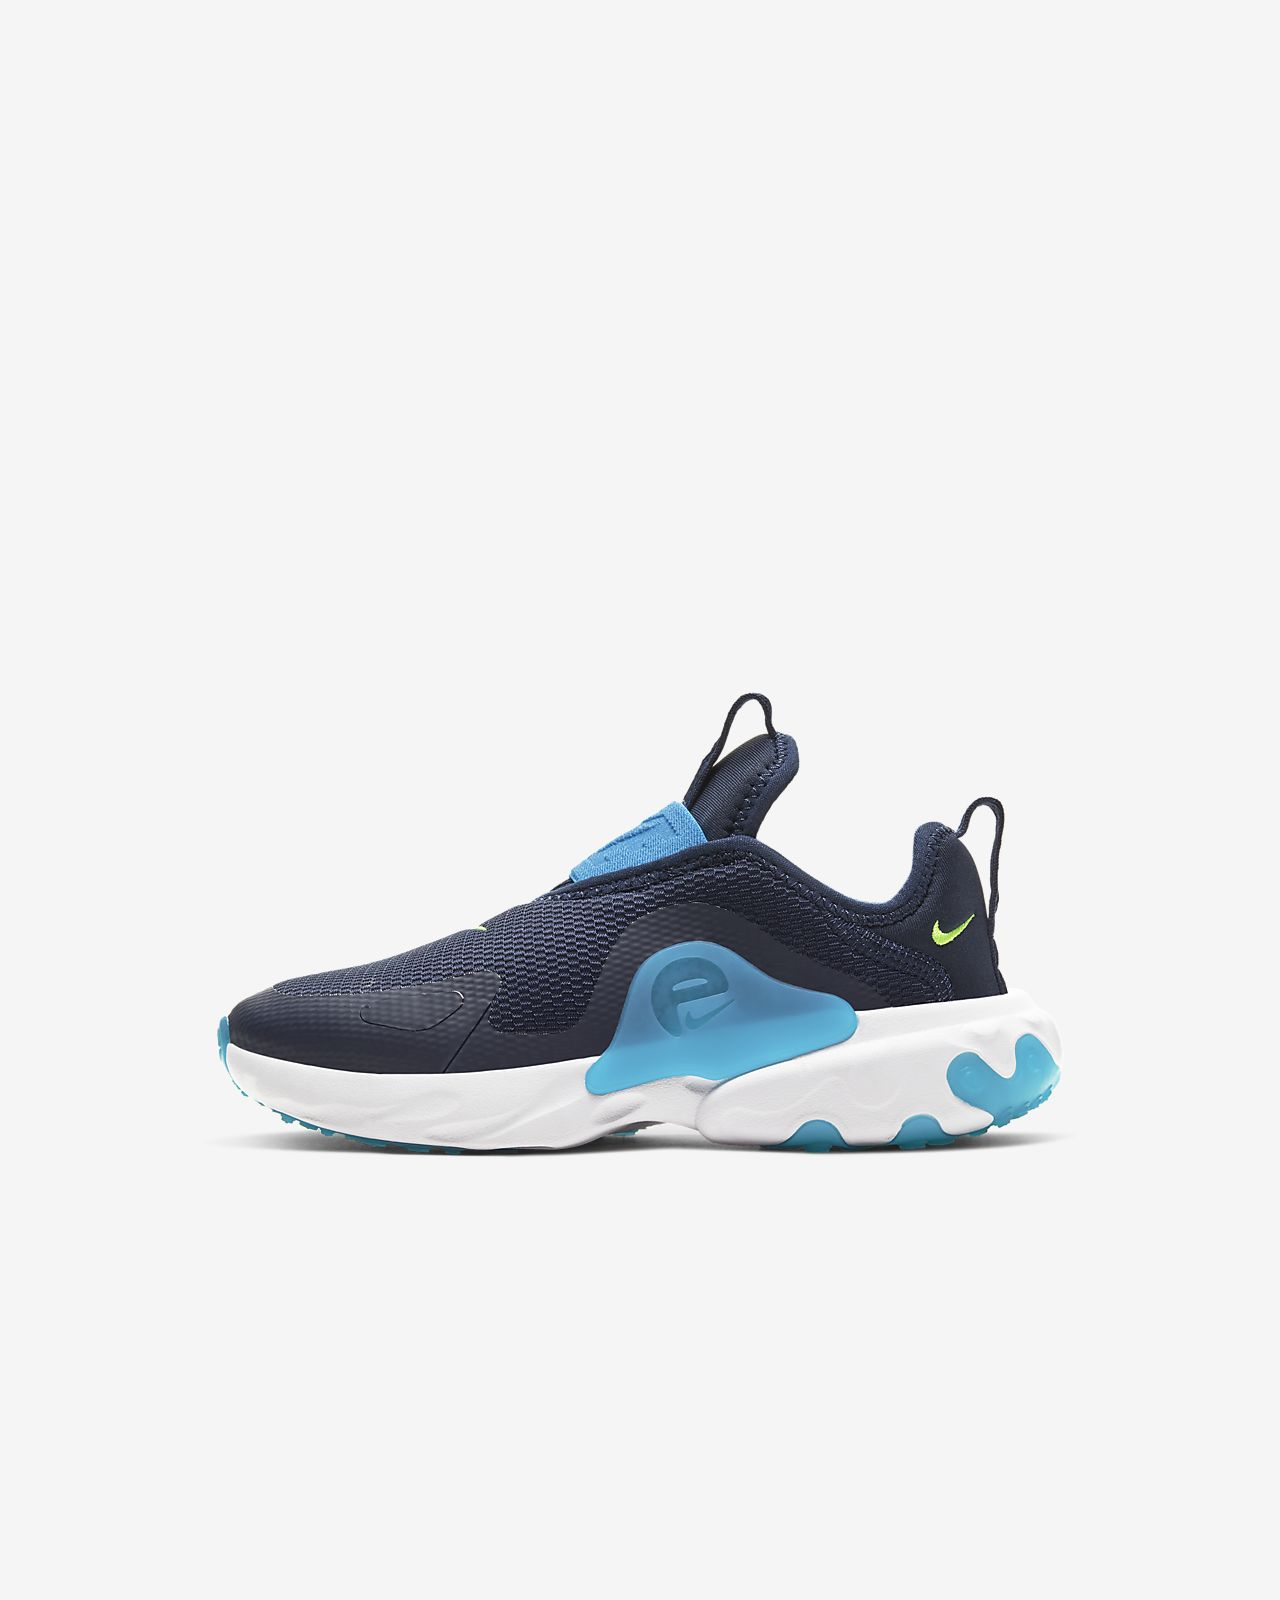 Nike RT Presto Extreme Little Kids' Shoe